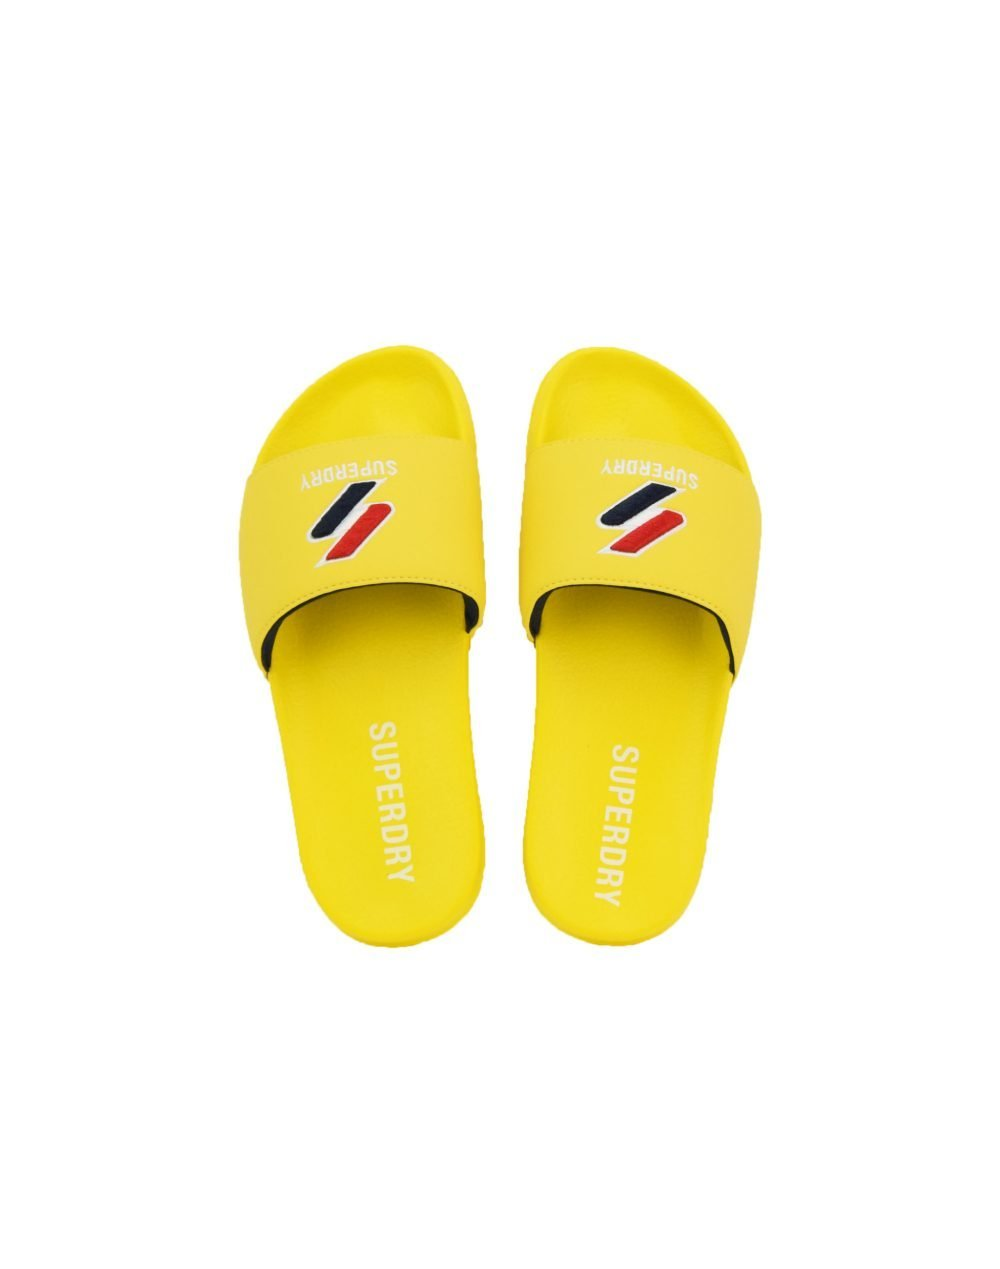 Superdry Core Pool Slide (WF310110A 02K) Yellow